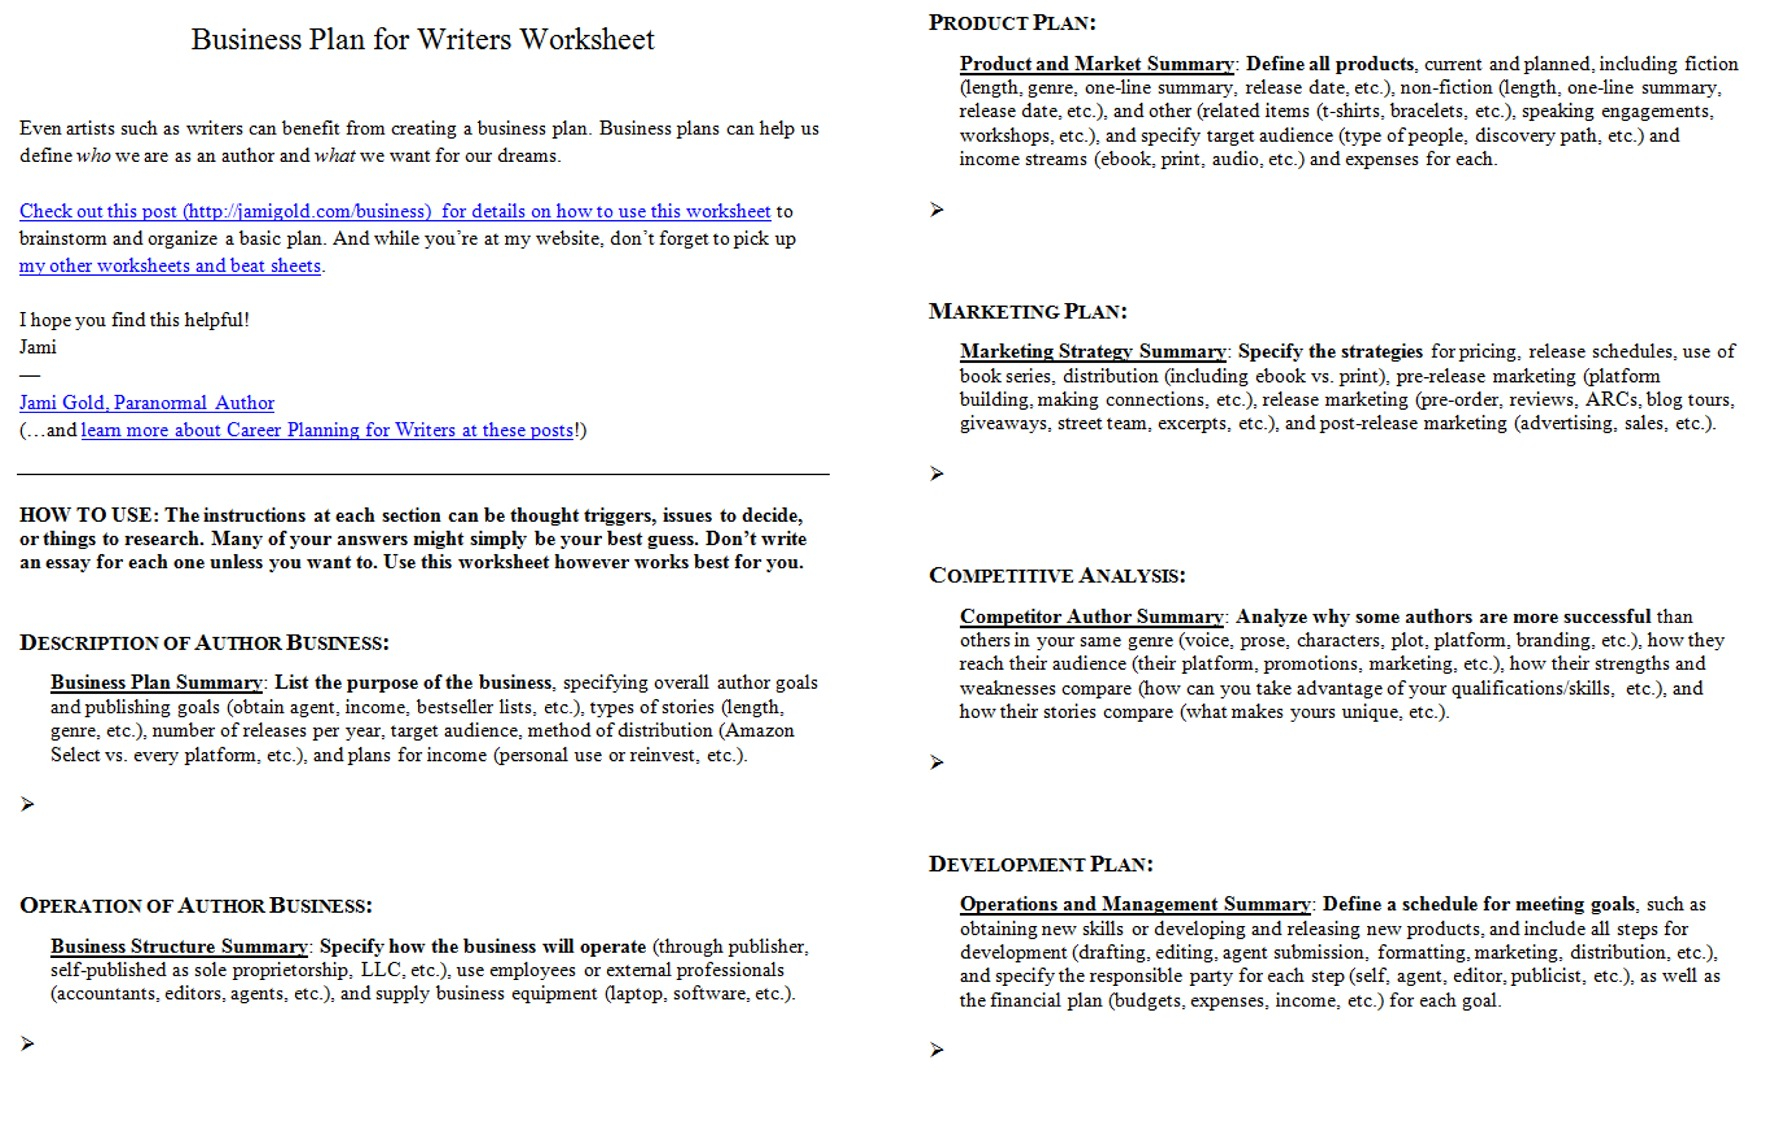 Weirdmailus  Prepossessing Worksheets For Writers  Jami Gold Paranormal Author With Engaging Screen Shot Of Both Pages Of The Business Plan For Writers Worksheet With Appealing Lcm Worksheets Also Missing Number Worksheets In Addition Kites And Trapezoids Worksheet Answers And Proportion Worksheets As Well As Gram Formula Mass Worksheet Additionally Stress Management Worksheets From Jamigoldcom With Weirdmailus  Engaging Worksheets For Writers  Jami Gold Paranormal Author With Appealing Screen Shot Of Both Pages Of The Business Plan For Writers Worksheet And Prepossessing Lcm Worksheets Also Missing Number Worksheets In Addition Kites And Trapezoids Worksheet Answers From Jamigoldcom